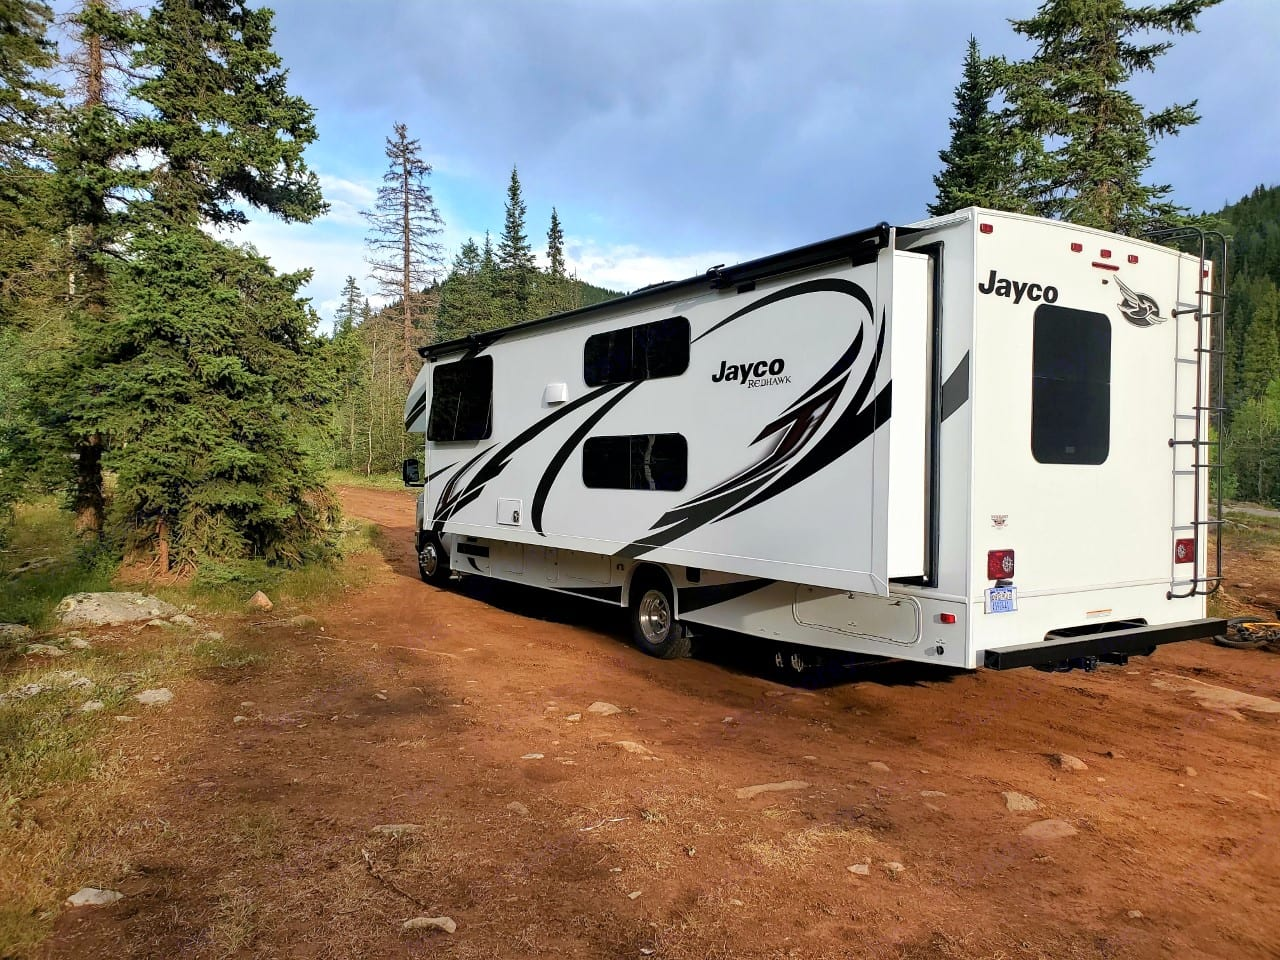 Full wall slide out provides extra space inside.. Jayco Redhawk 2021